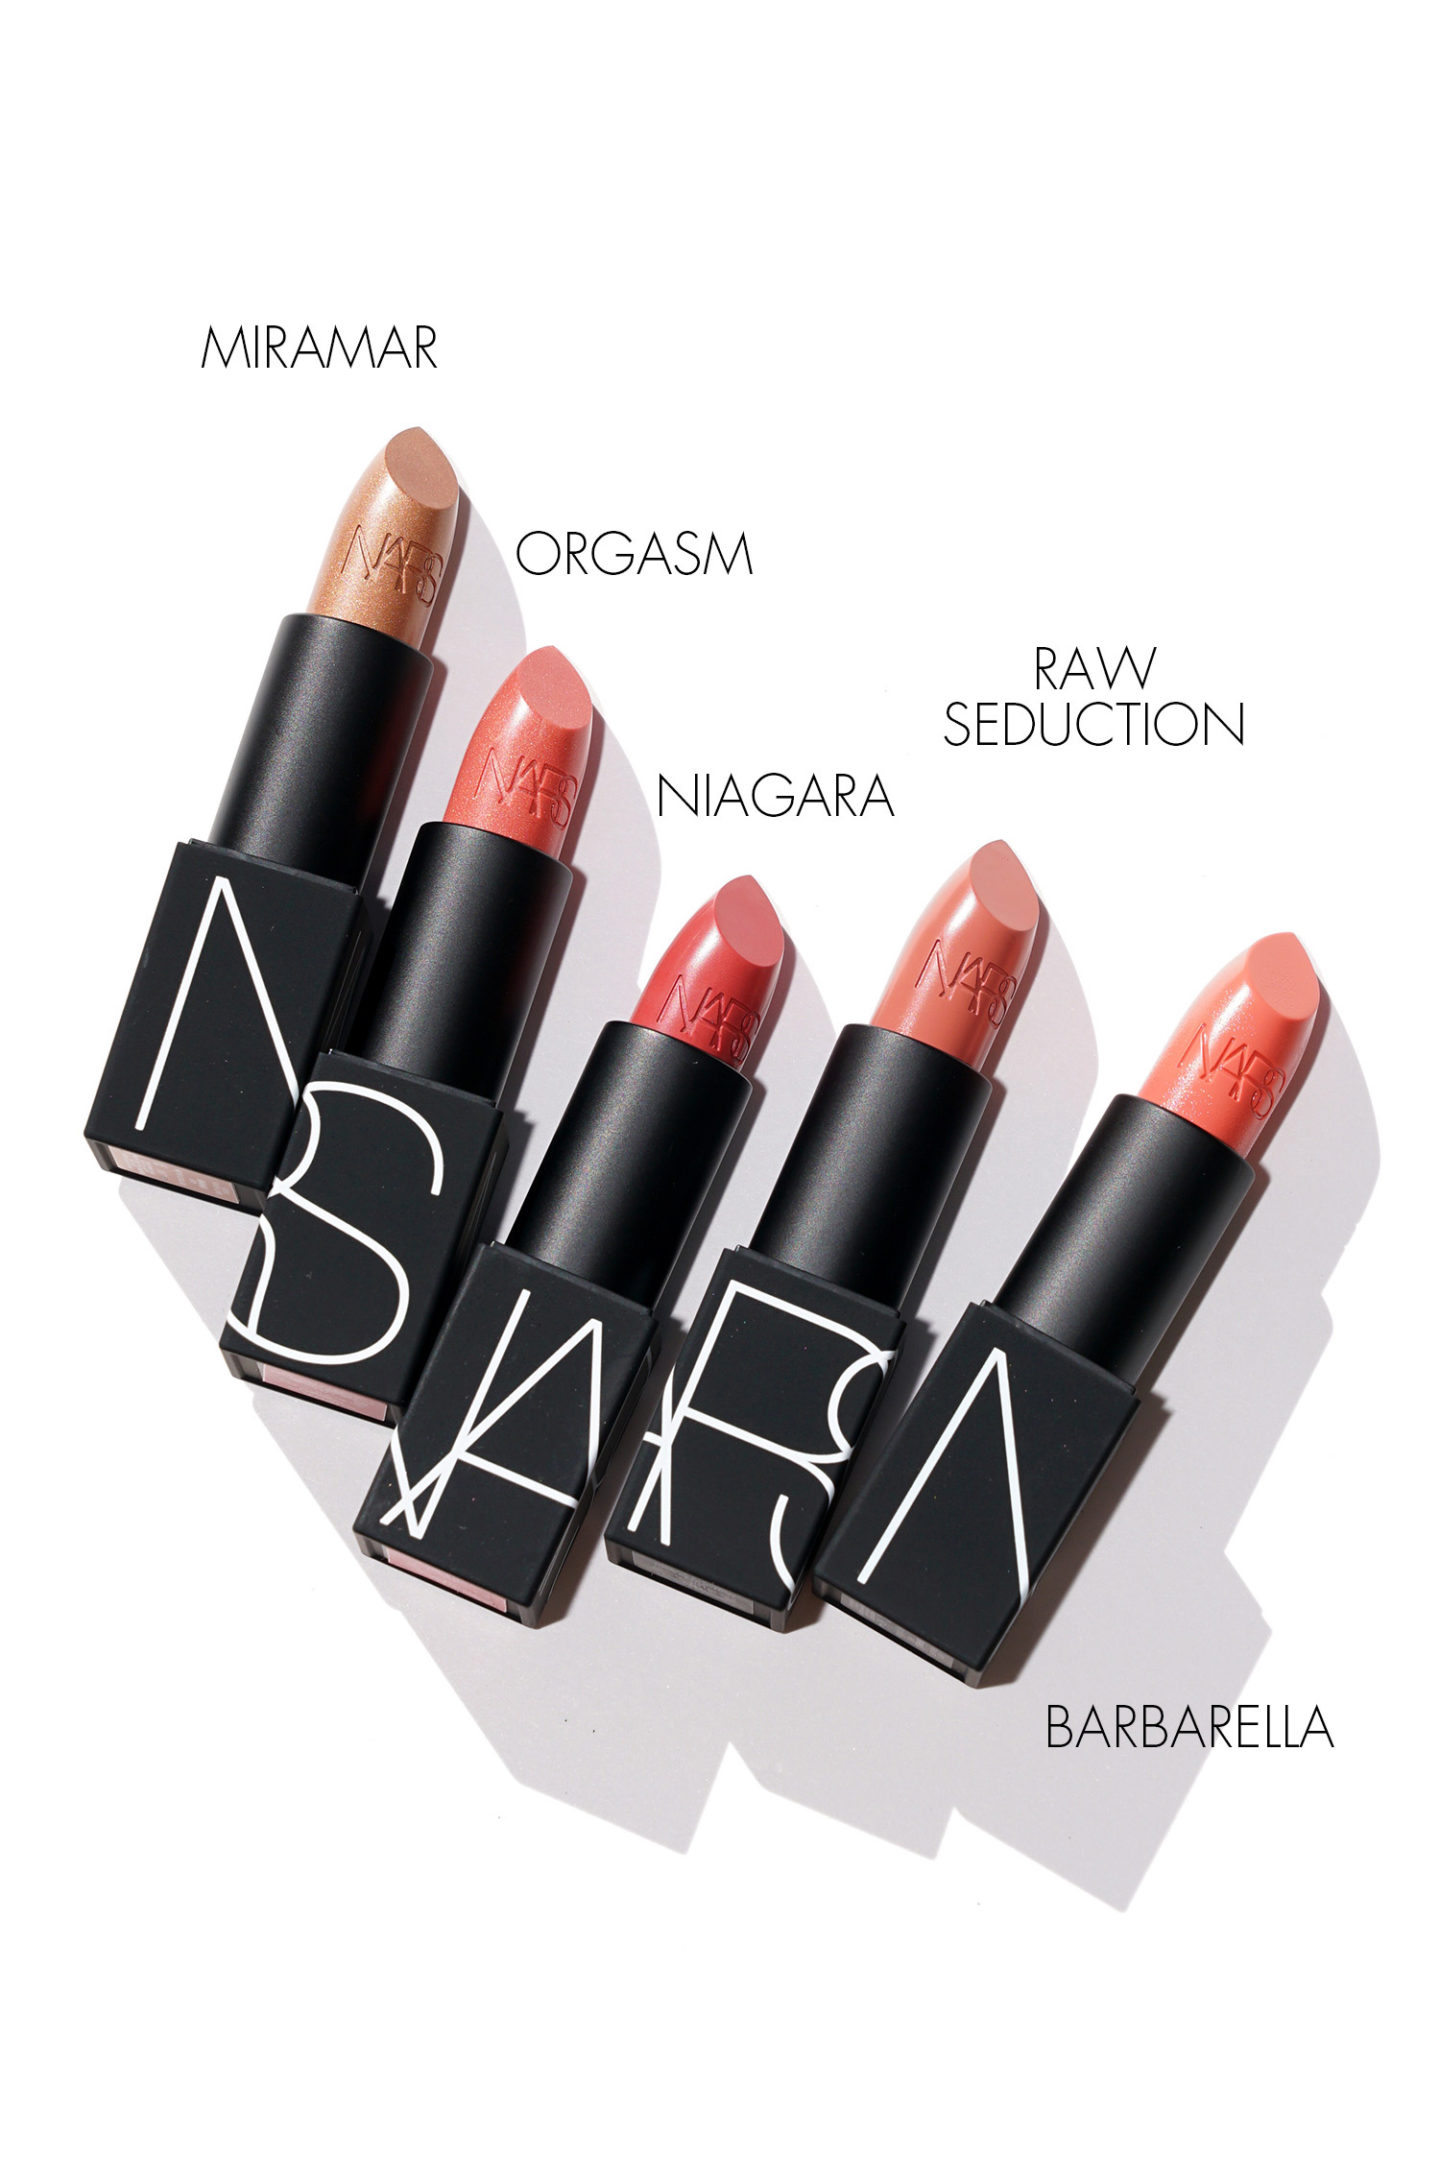 NARS Rouge à lèvres Miramar, Orgasm, Niagara, Raw Seduction, Barbarella